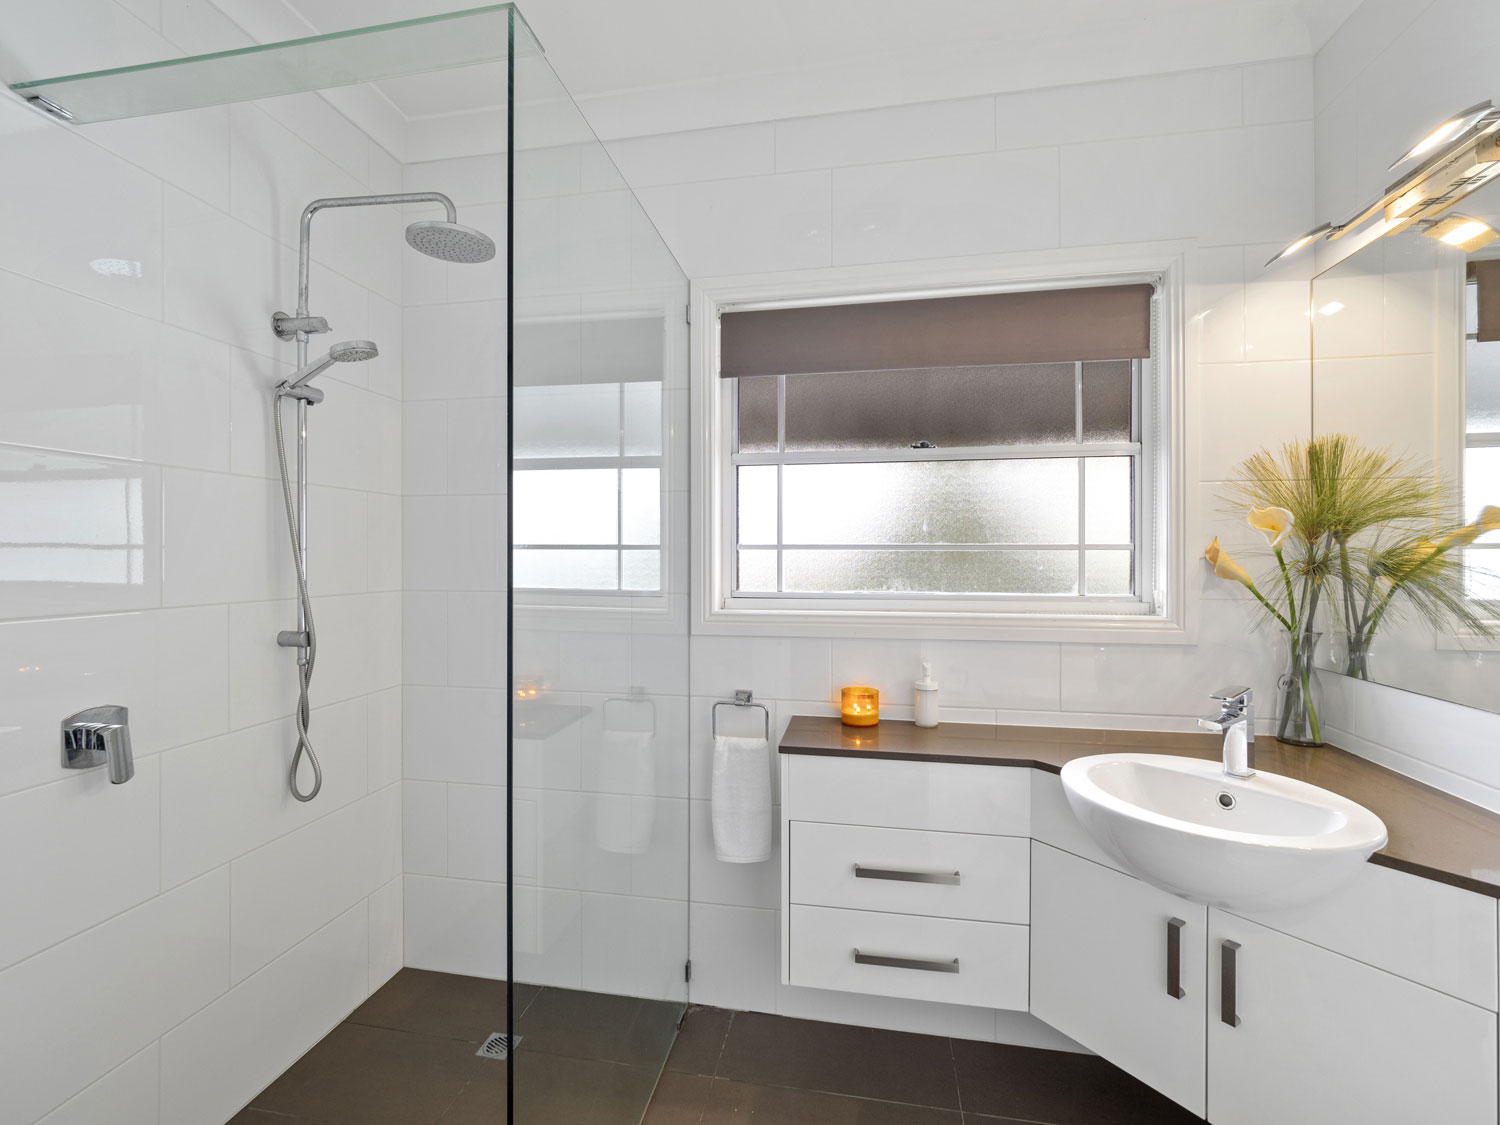 The ensuite of a home for sale at Eaton's Hill